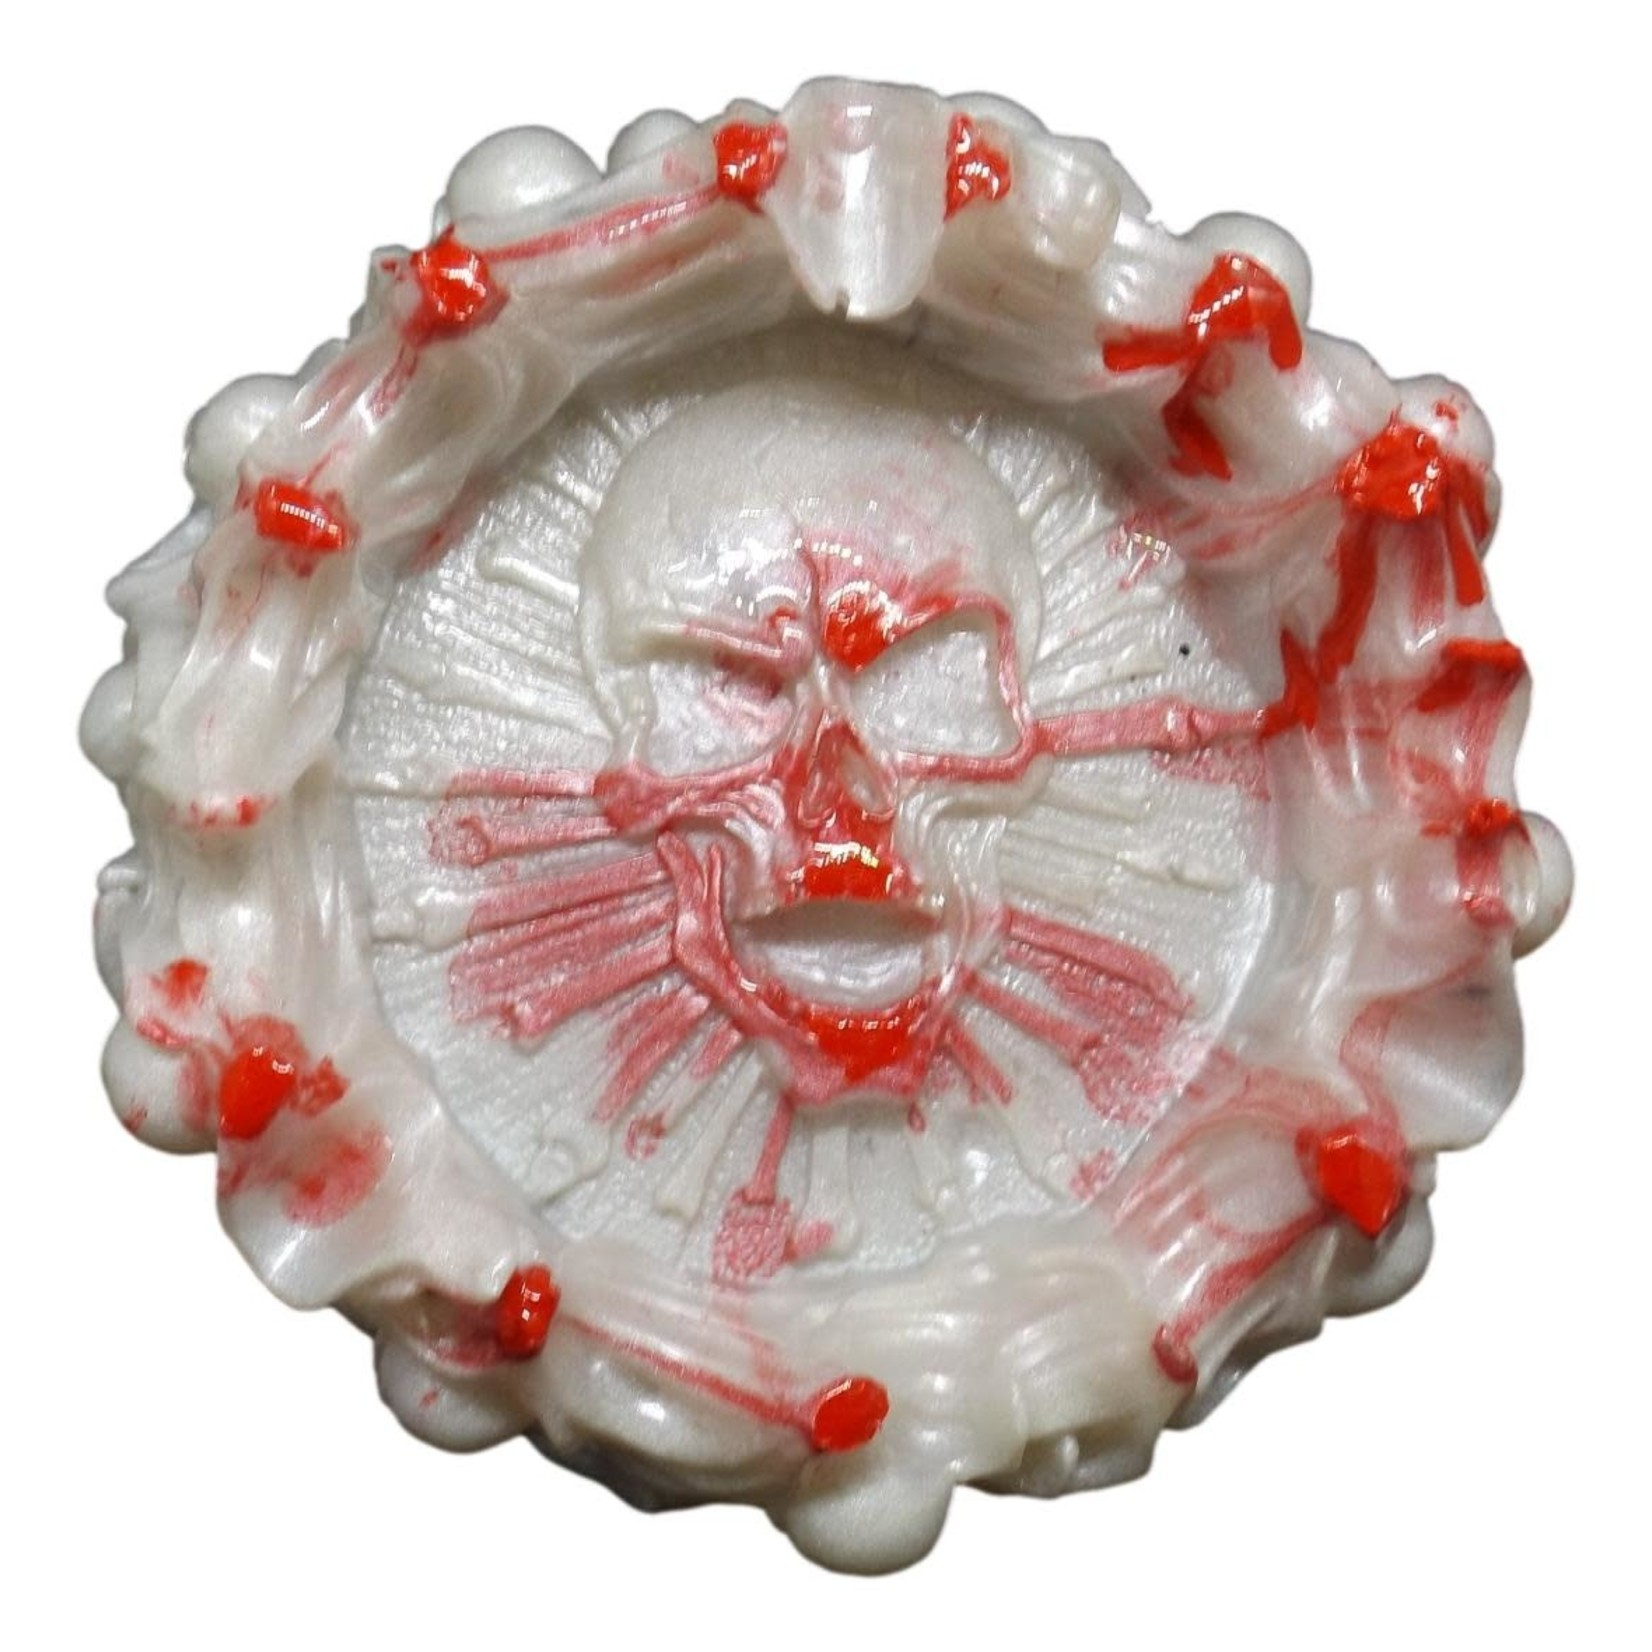 East Coast Sirens Skull Resin Ashtray - White with Blood